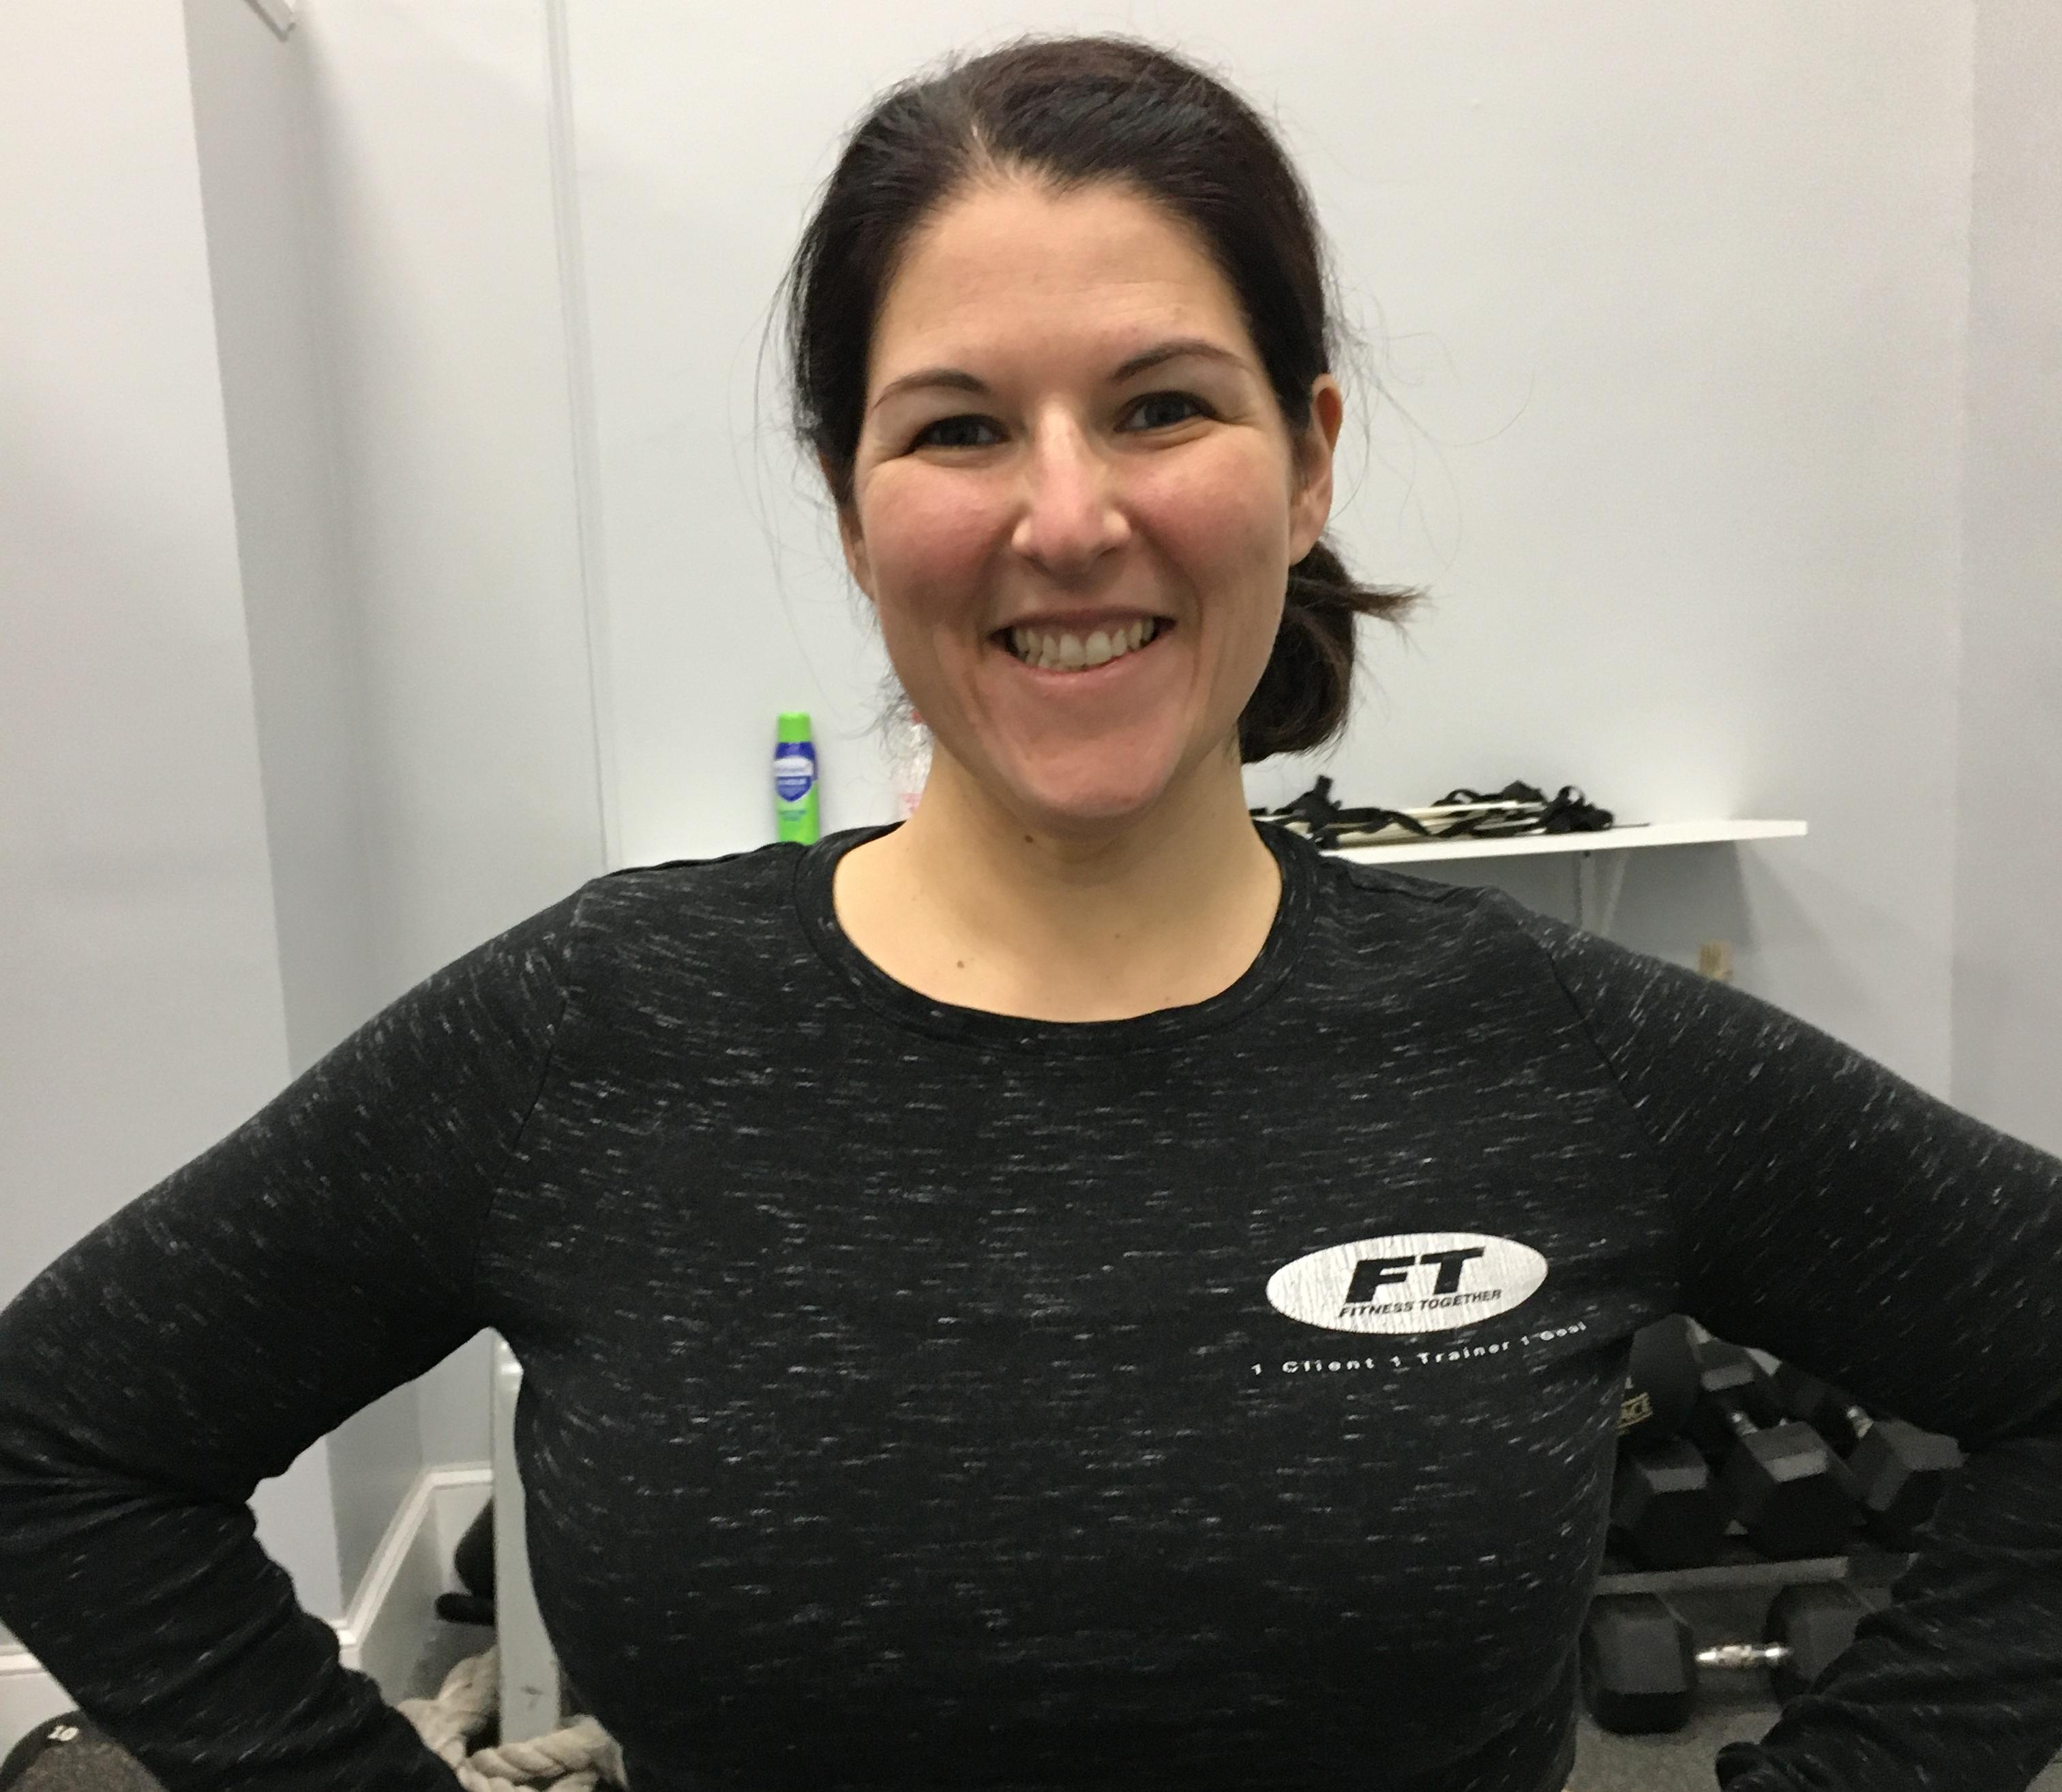 fitness together Andover owner